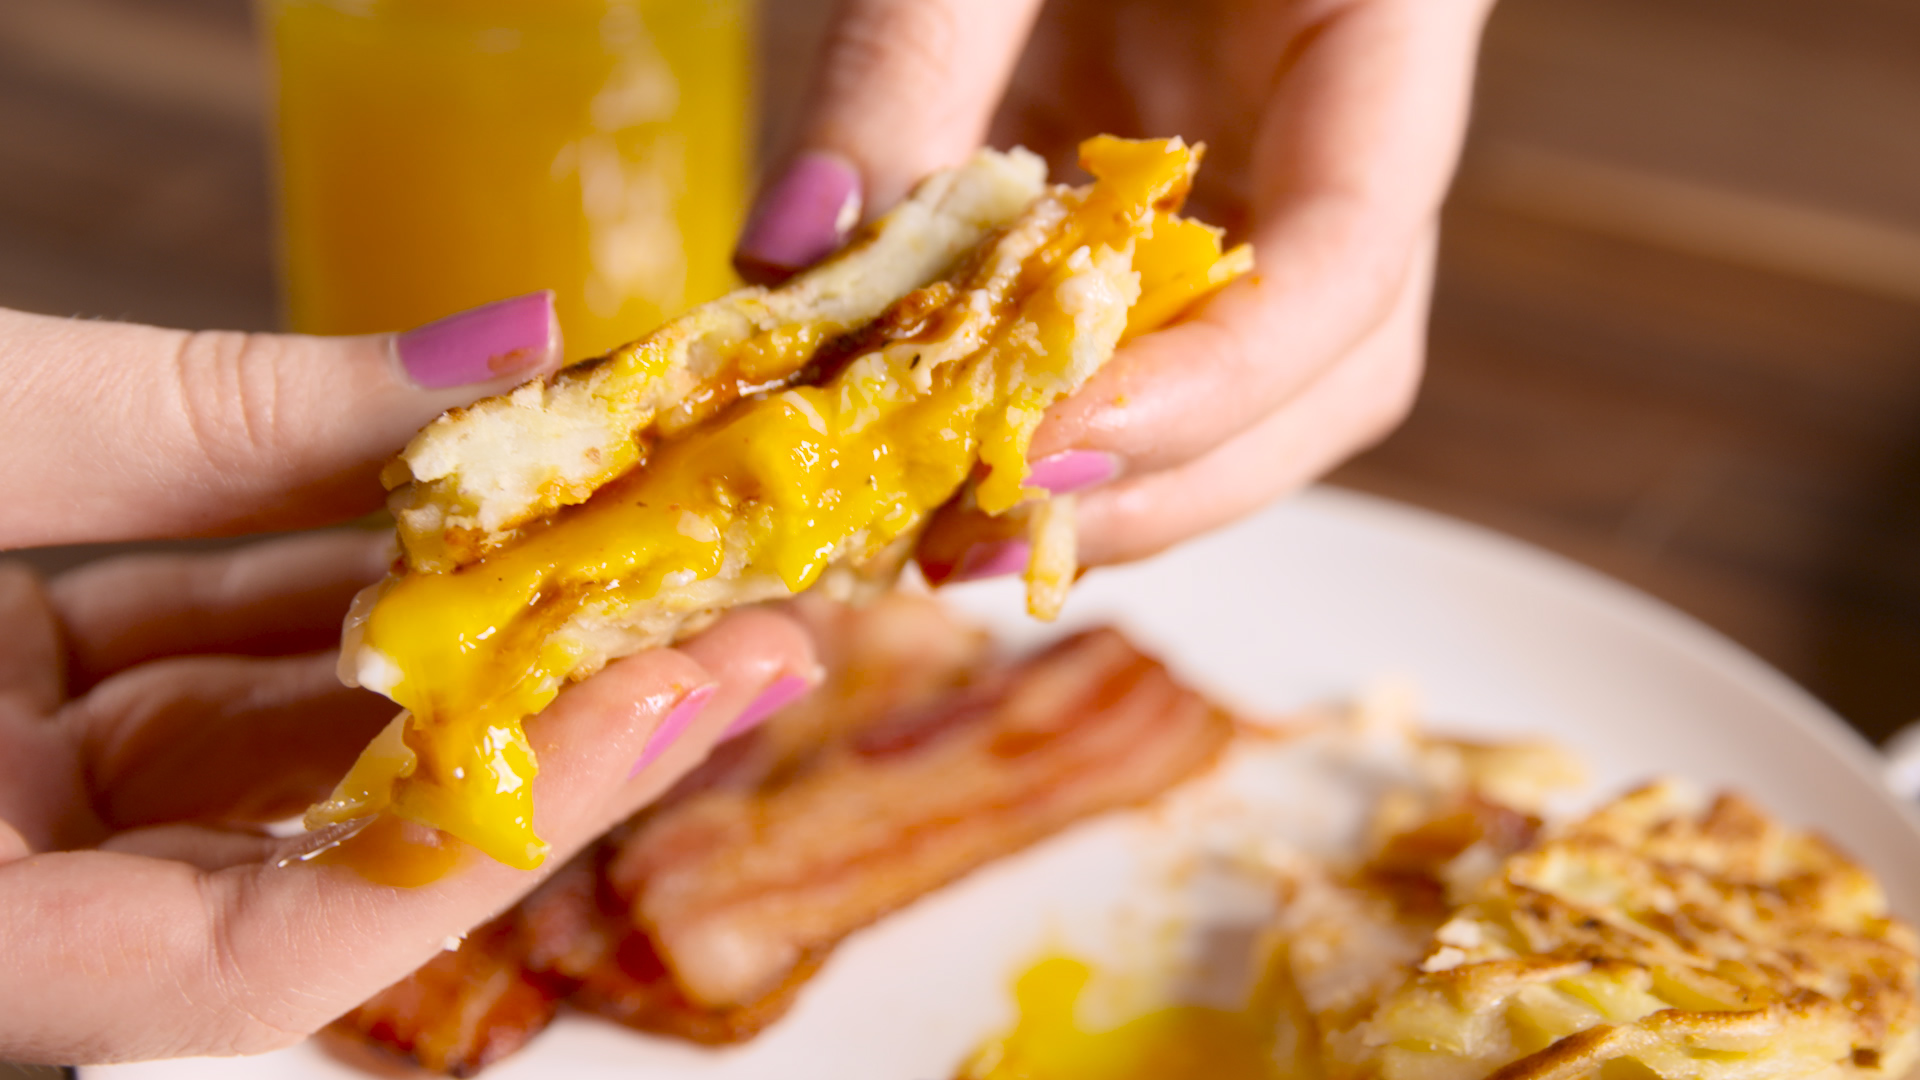 How to Make Hash Brown Breakfast Sandwiches